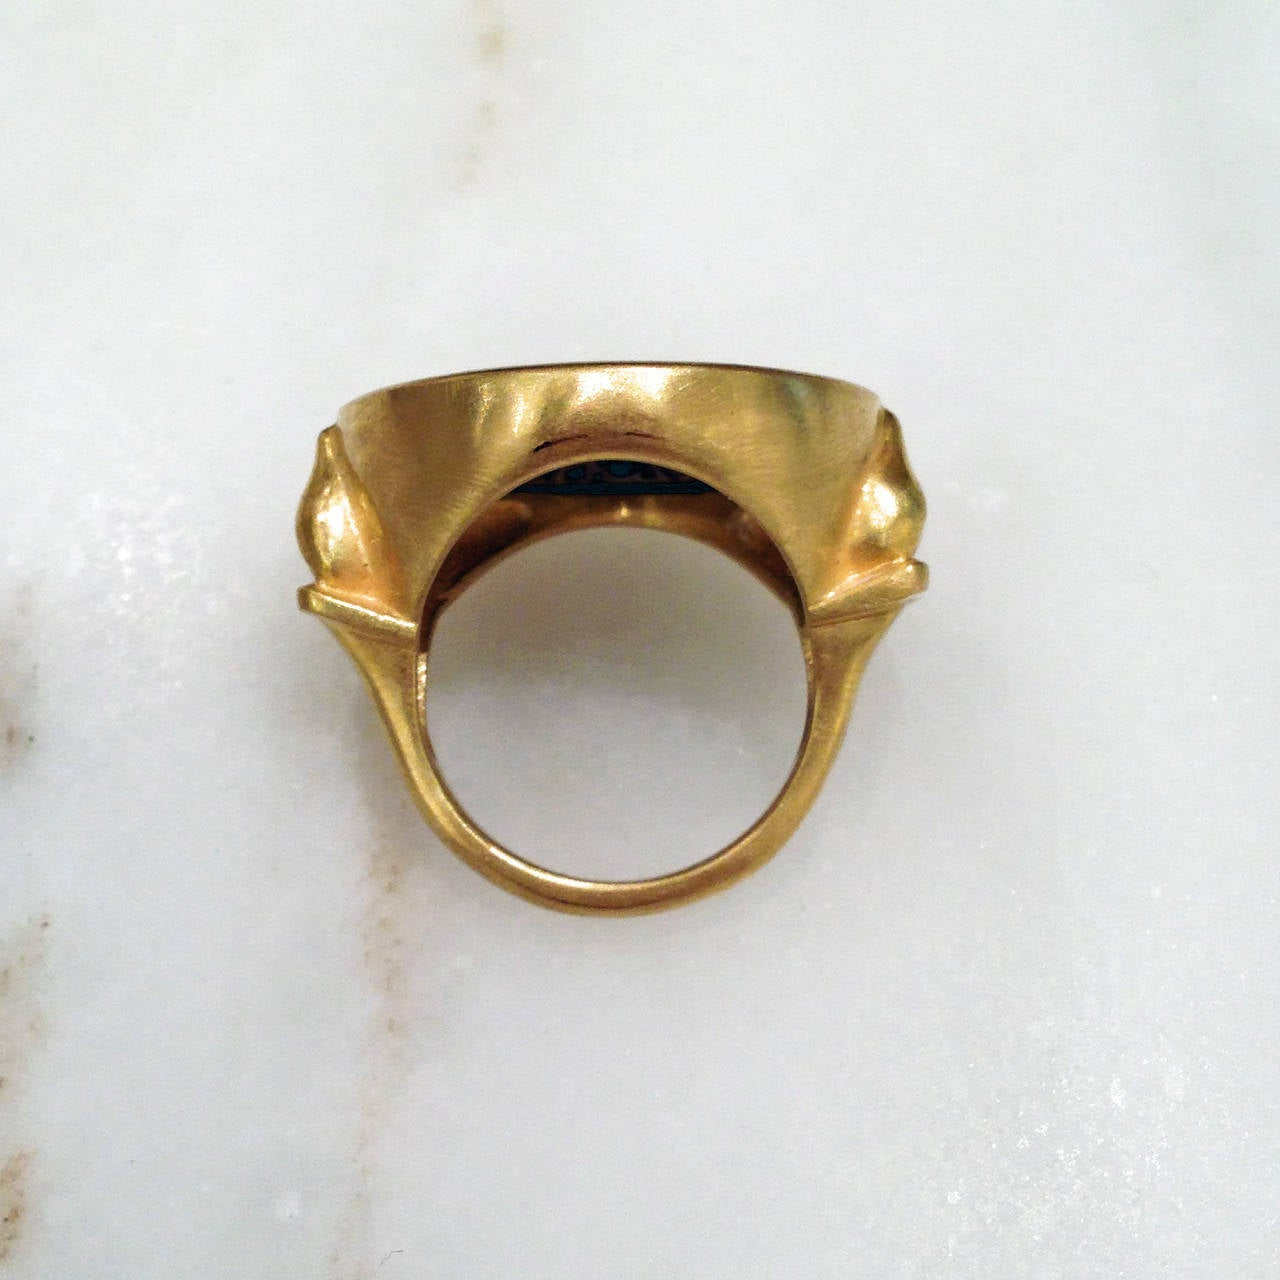 Bronze Roman Coin Heavy Gold Ring At 1stdibs. Imperial Wedding Rings. Elevated Engagement Rings. Understated Rings. 1mm Gold Wedding Rings. Octagon Engagement Rings. Citrine Stone Rings. Yellow Square Diamond Wedding Rings. Chocolate Diamond Wedding Rings